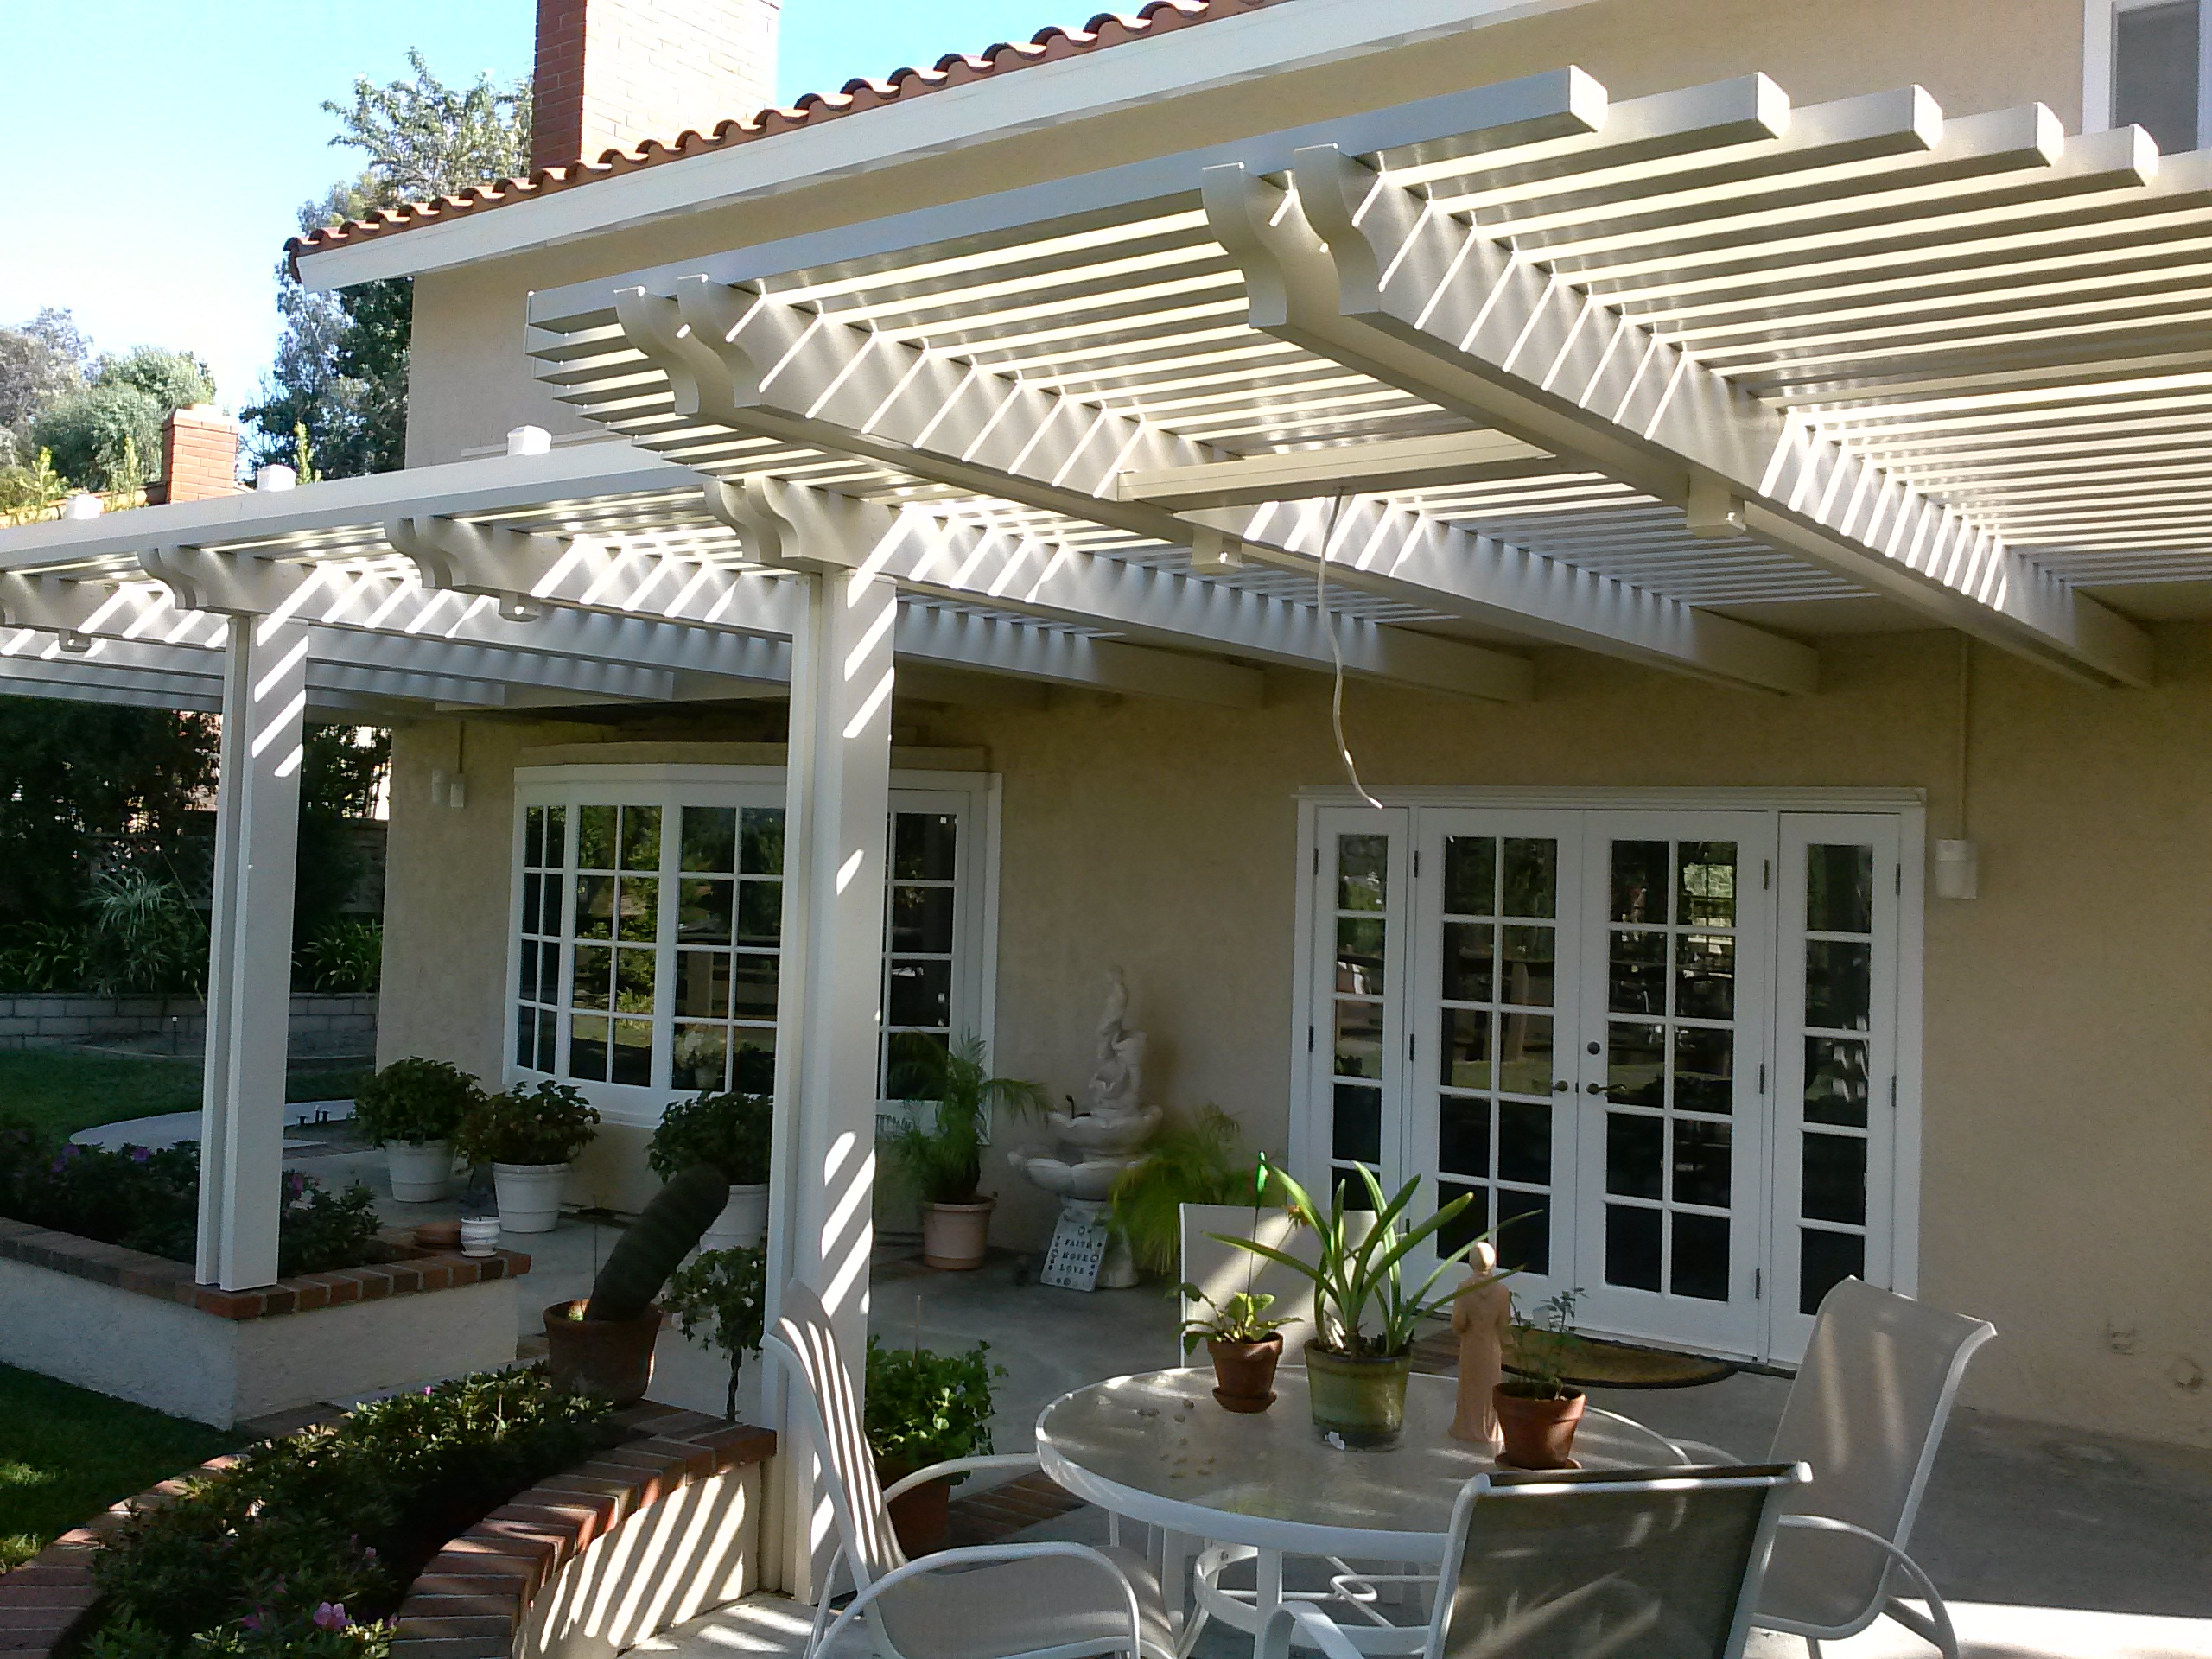 Aliso VIejo Double Rafter With Beams Alumawood Patio